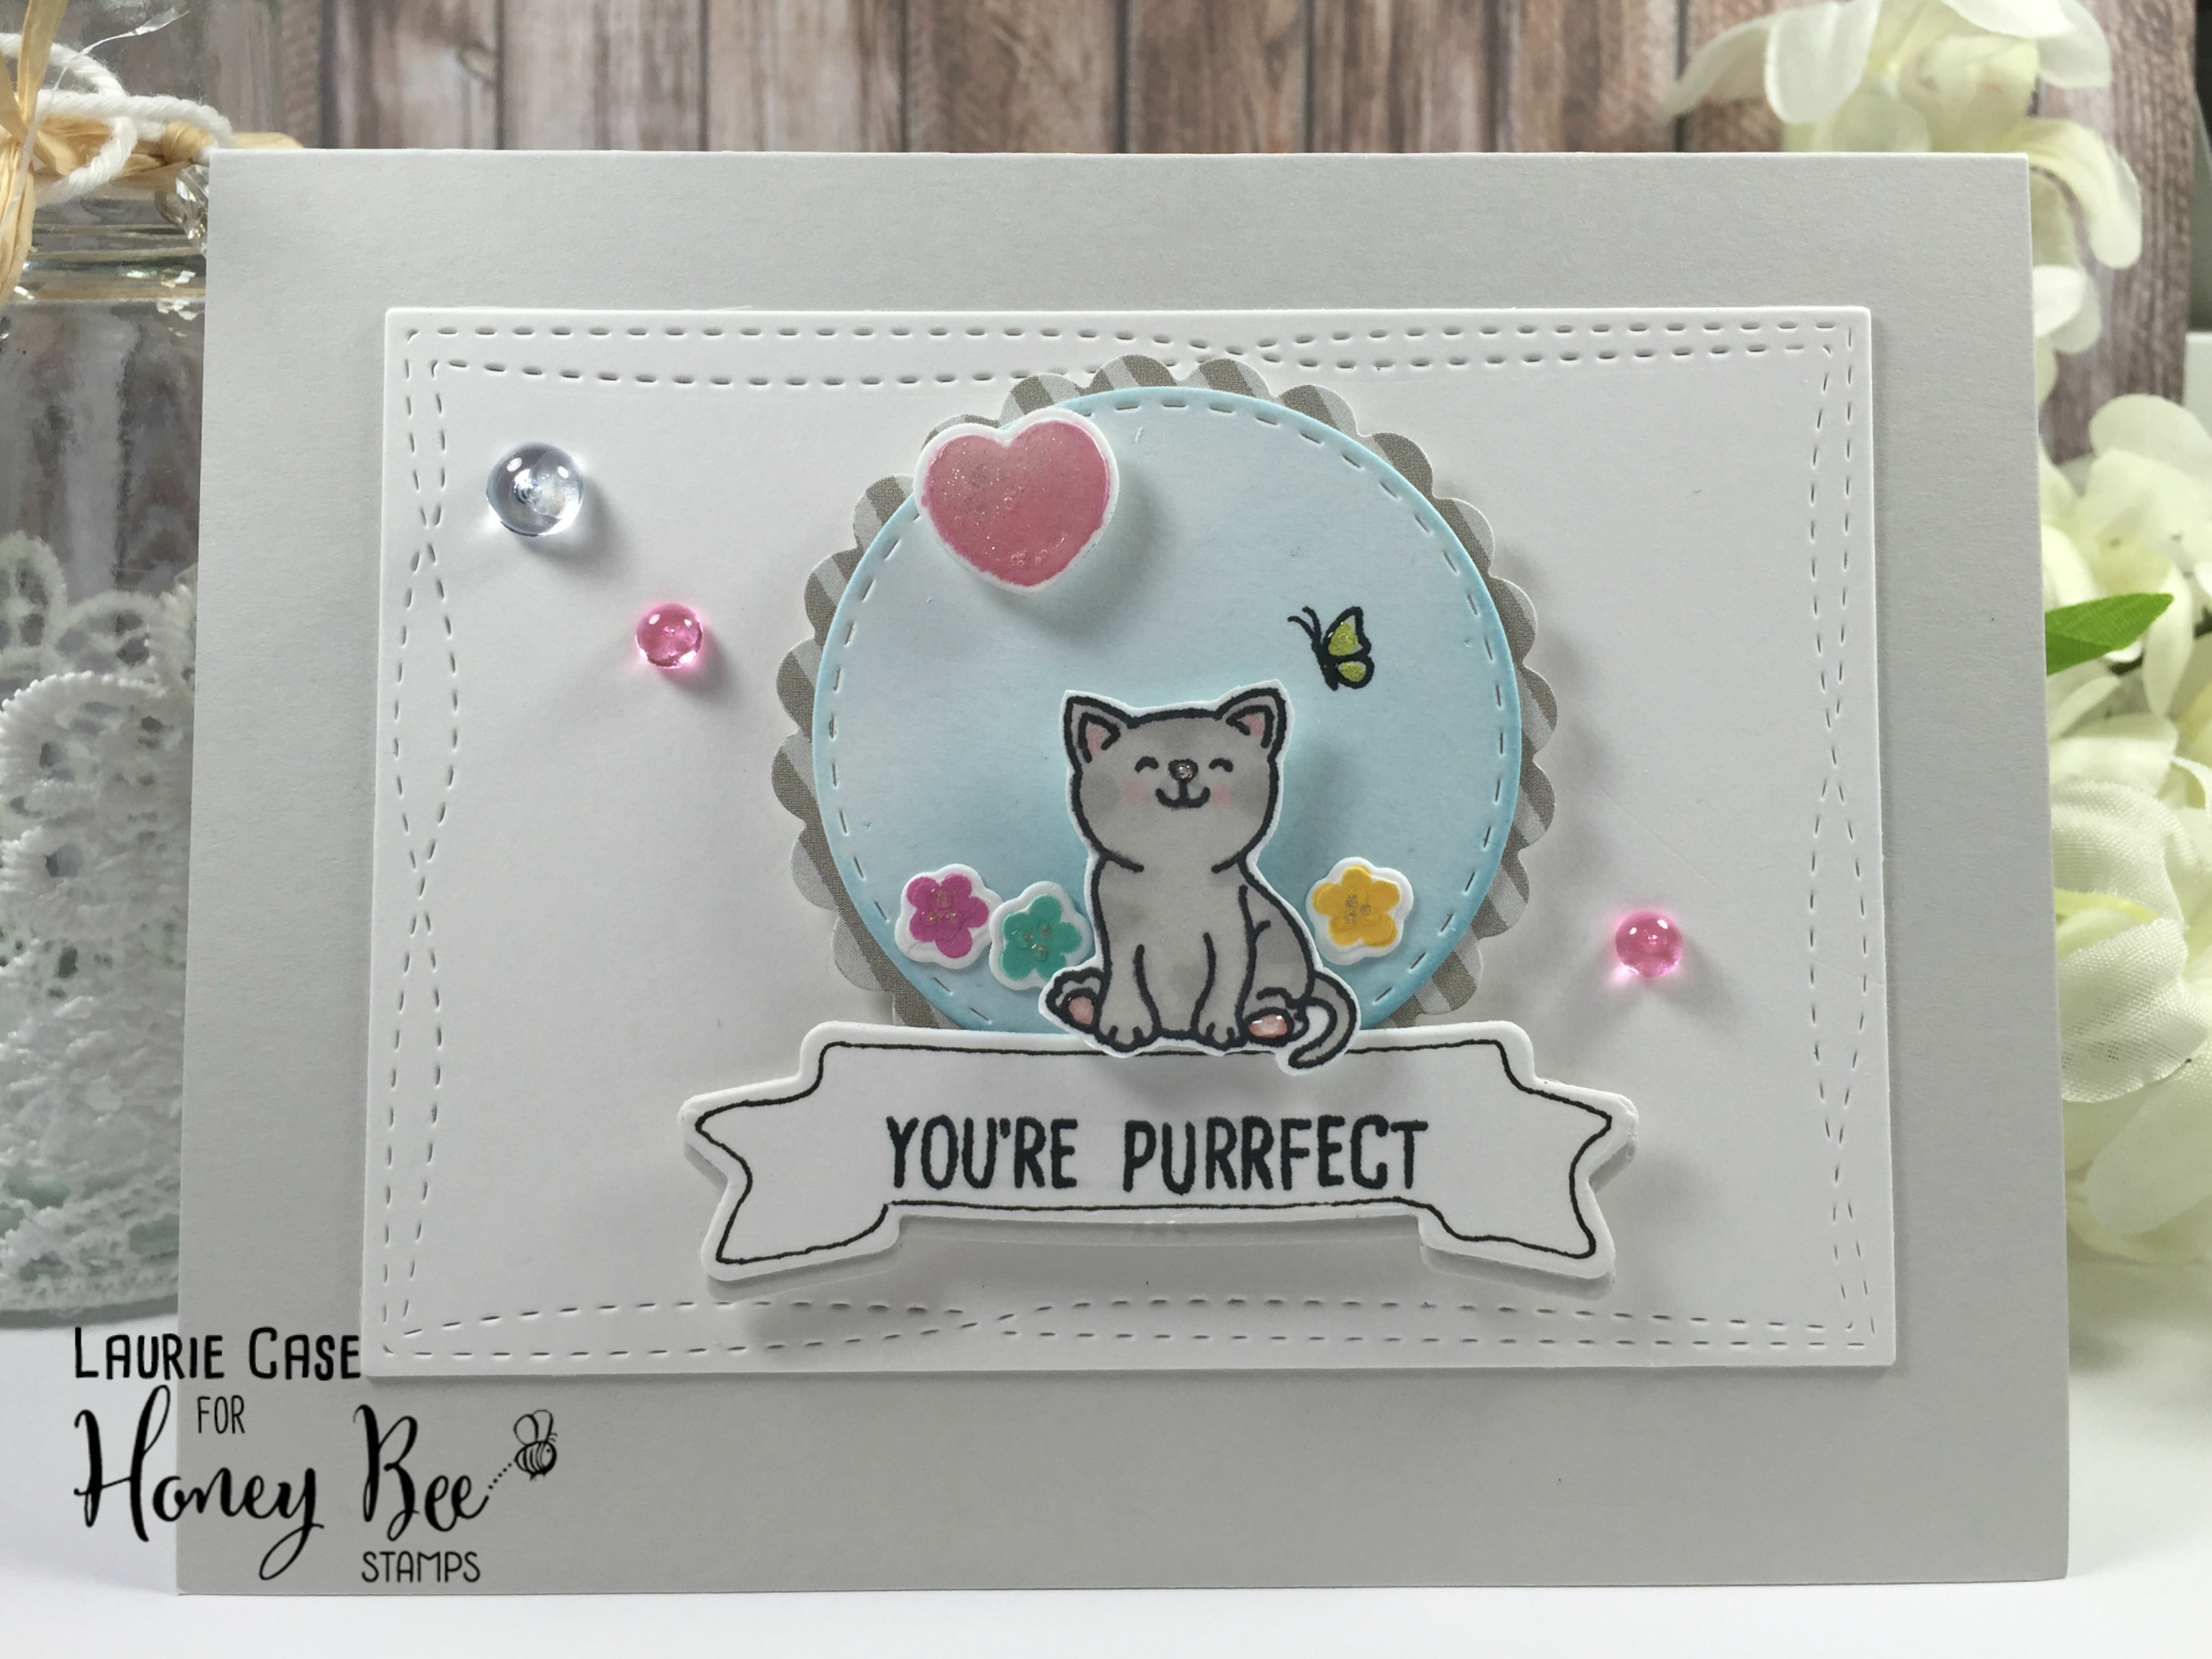 You're Purrfect!!